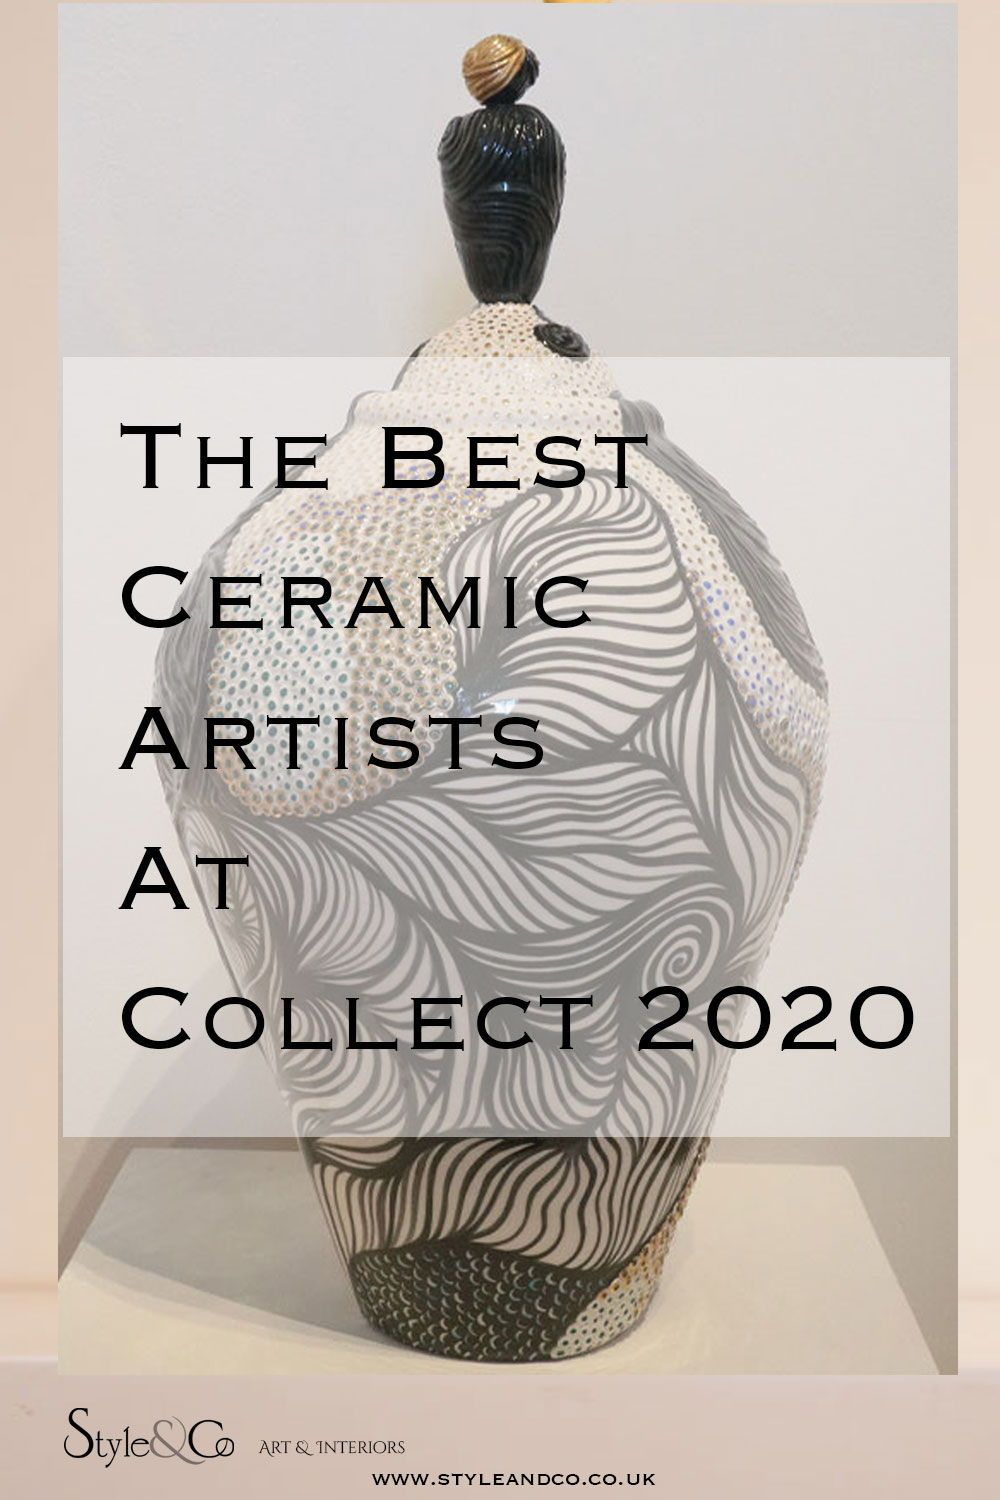 See the best Ceramics at Collect in our review of the show at Sommerset House  -  www.styleandco.co.uk/collect-2020 #ceramics #clay #porcelain #craftscouncil #collect2020 #pottery #craft #styleandco